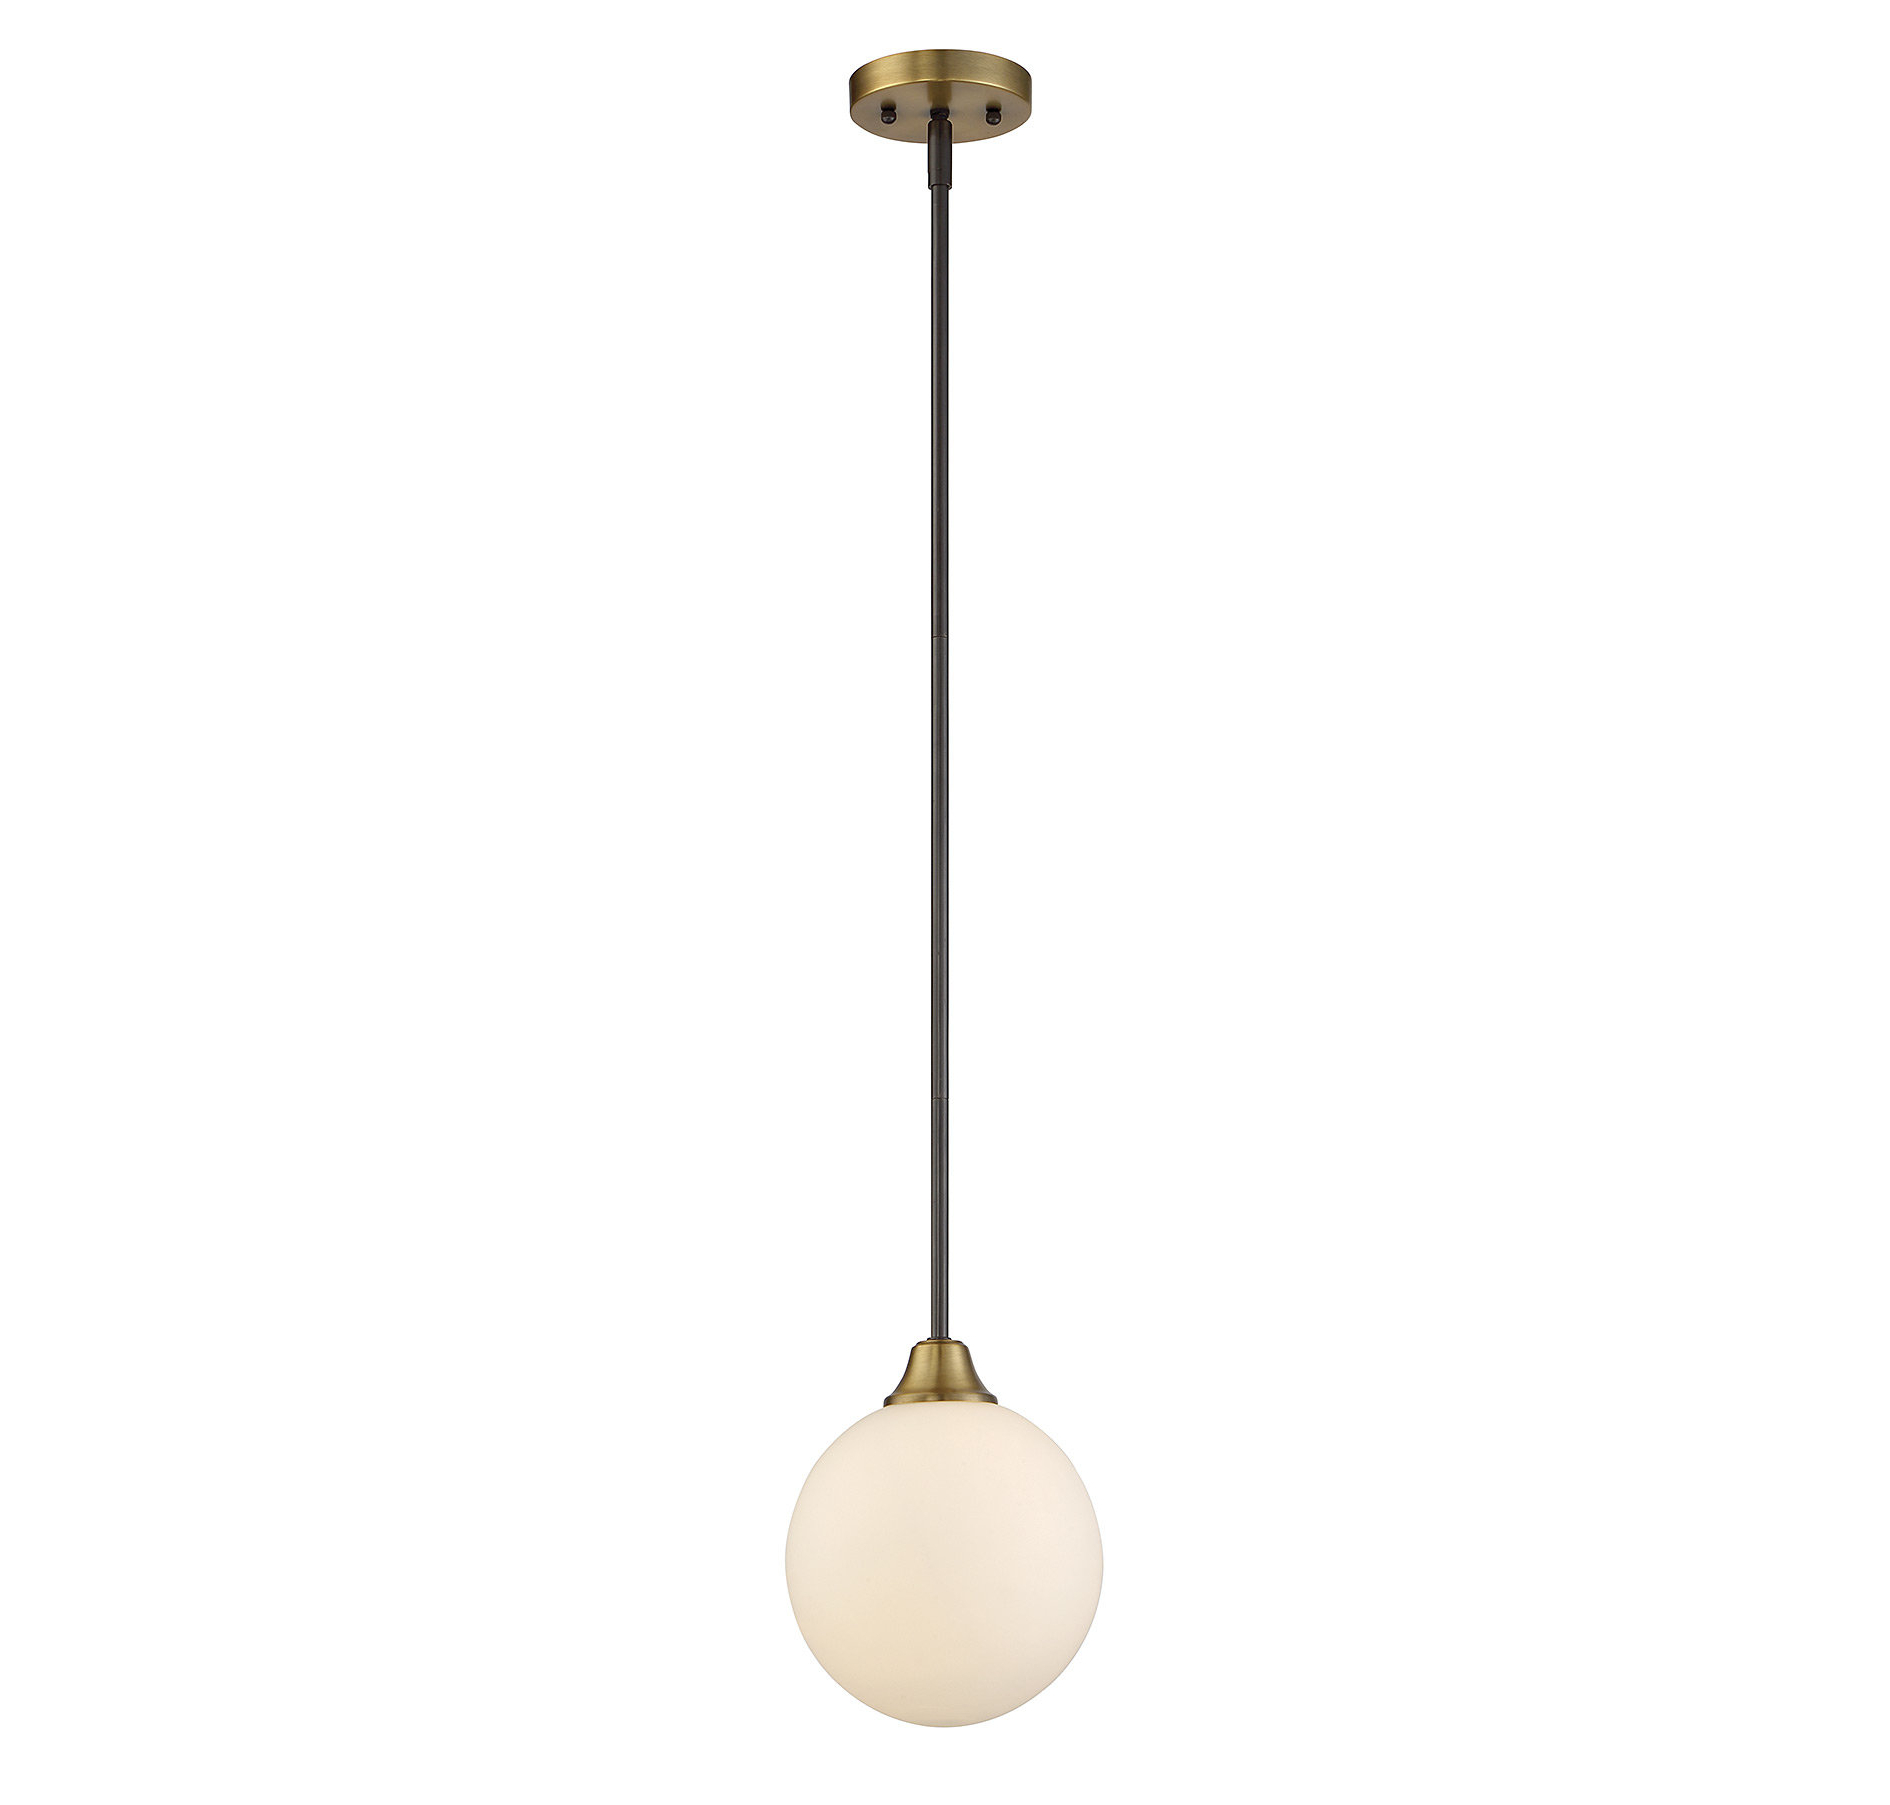 Fashionable Bautista 1 Light Single Globe Pendant Intended For Bautista 6 Light Kitchen Island Bulb Pendants (Gallery 12 of 20)